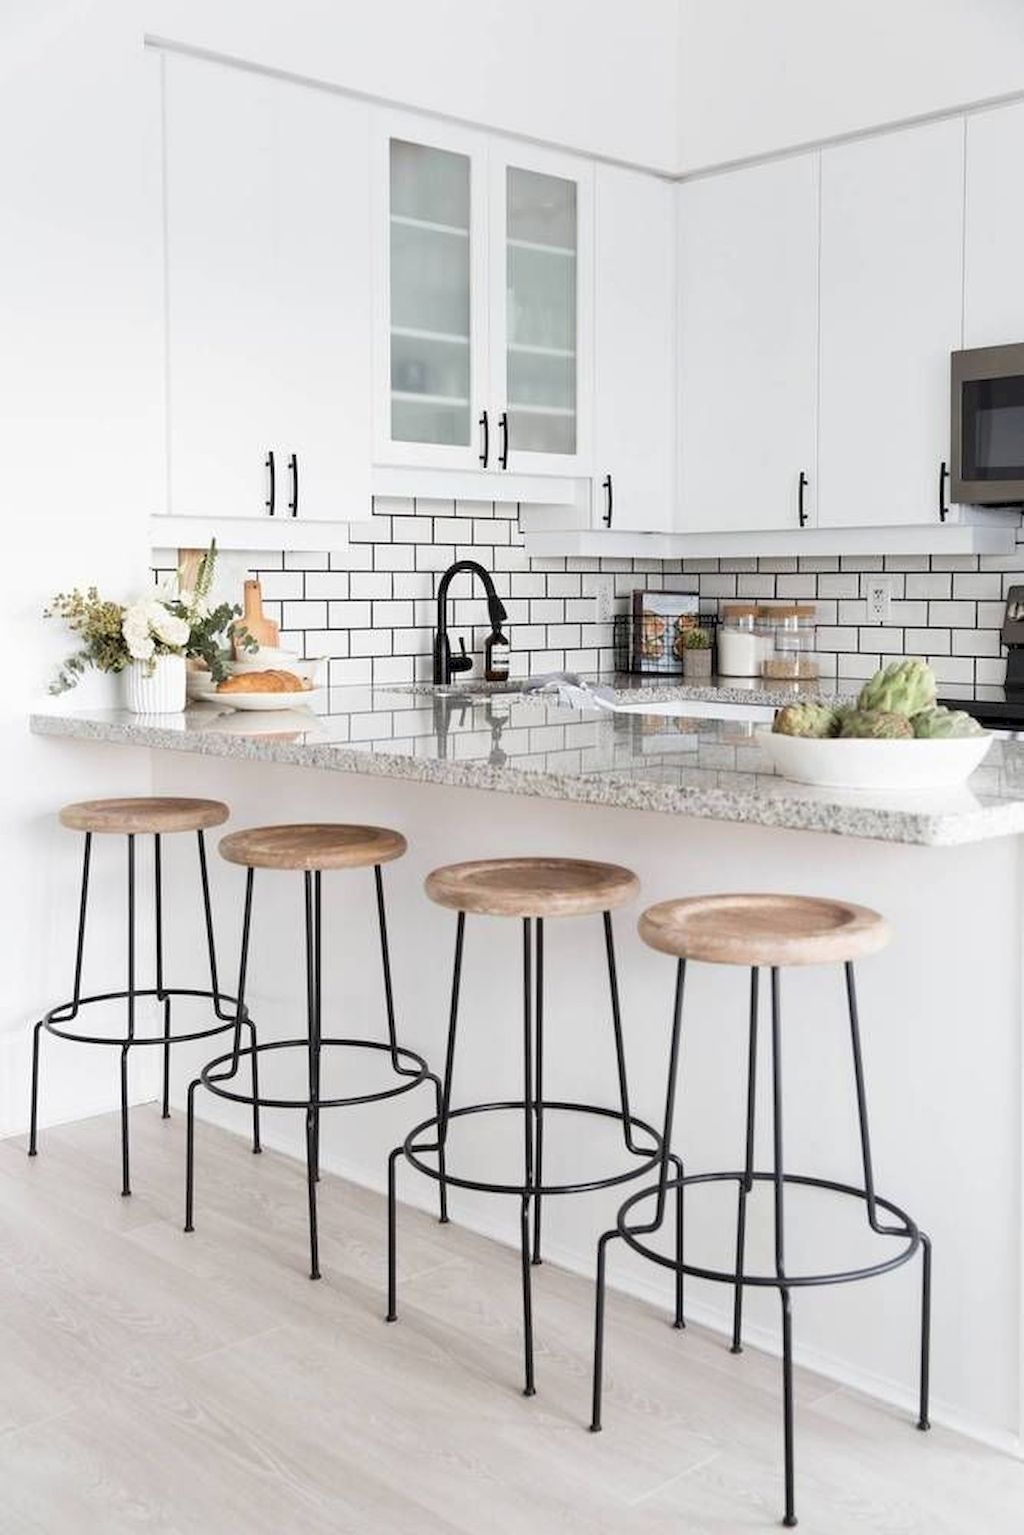 50 Minimalist Bar Stool Ideas for Small Kitchen Bar ...